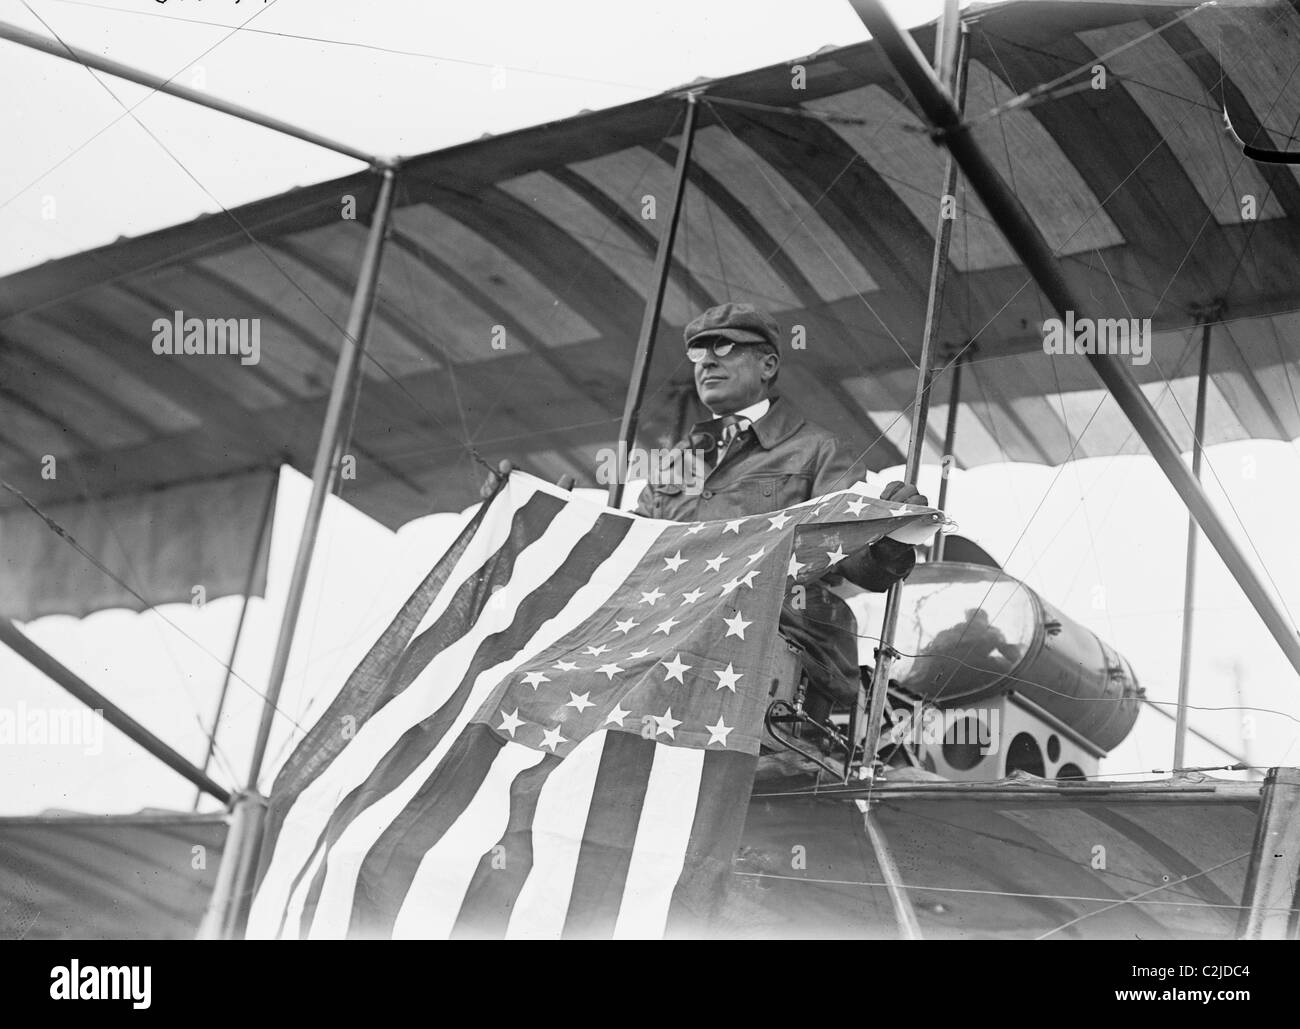 Aviator C.B. Harmon Unfurls Stars and Stripes from his pilot seat on his Biplane. - Stock Image